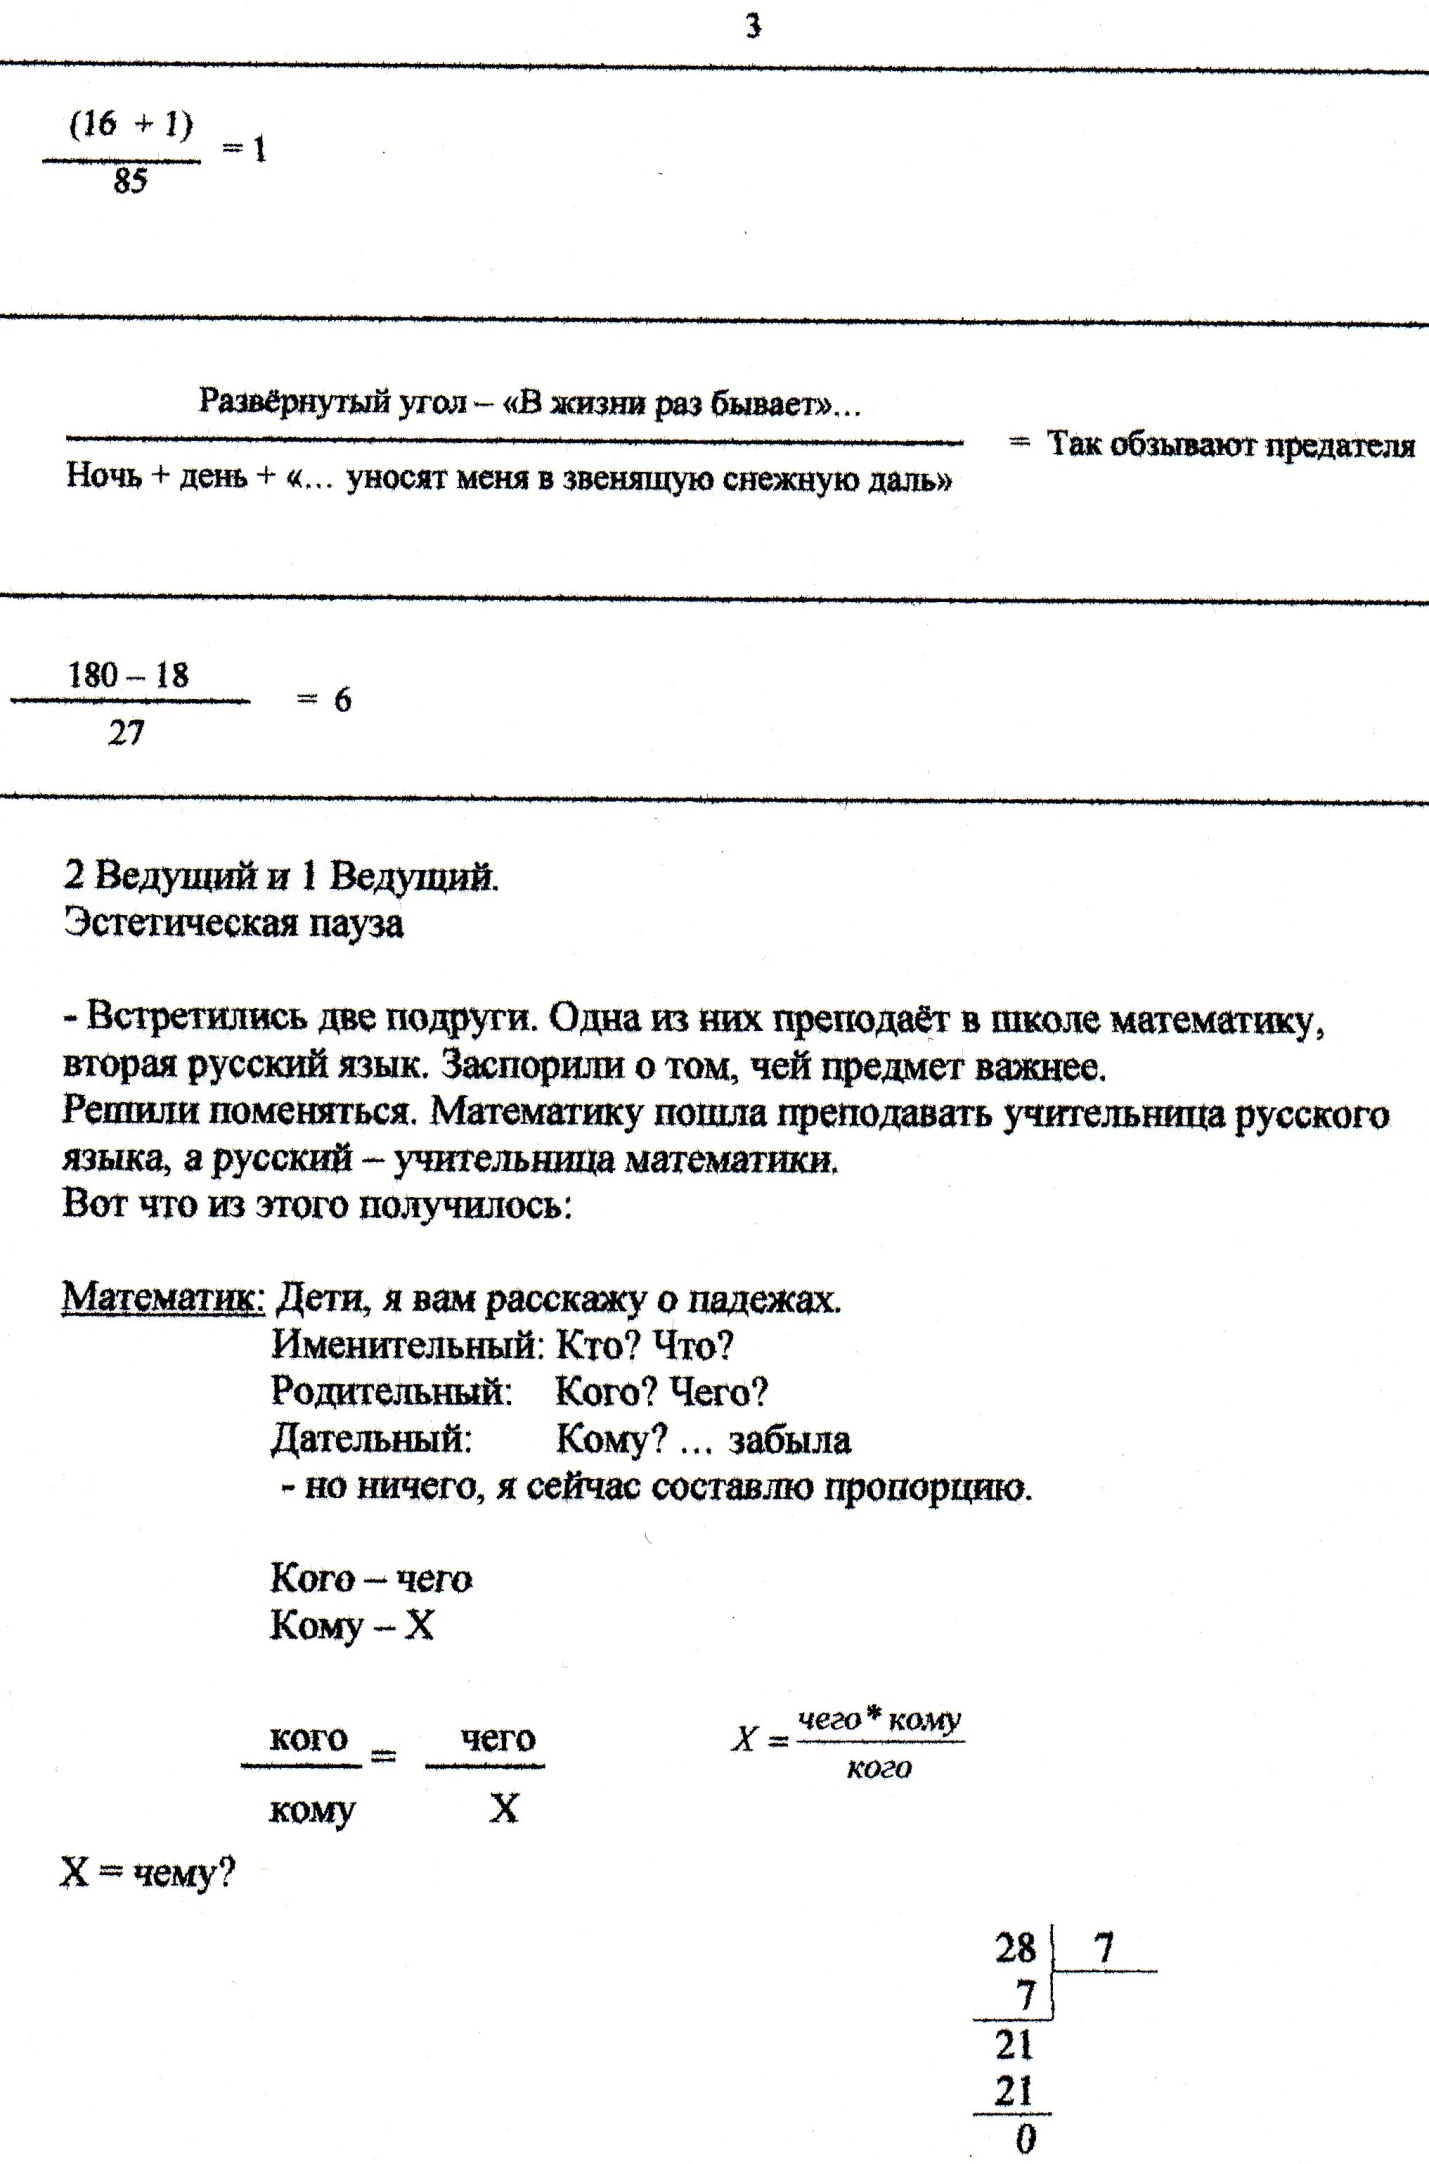 C:\Users\Валентина\Pictures\img174.jpg